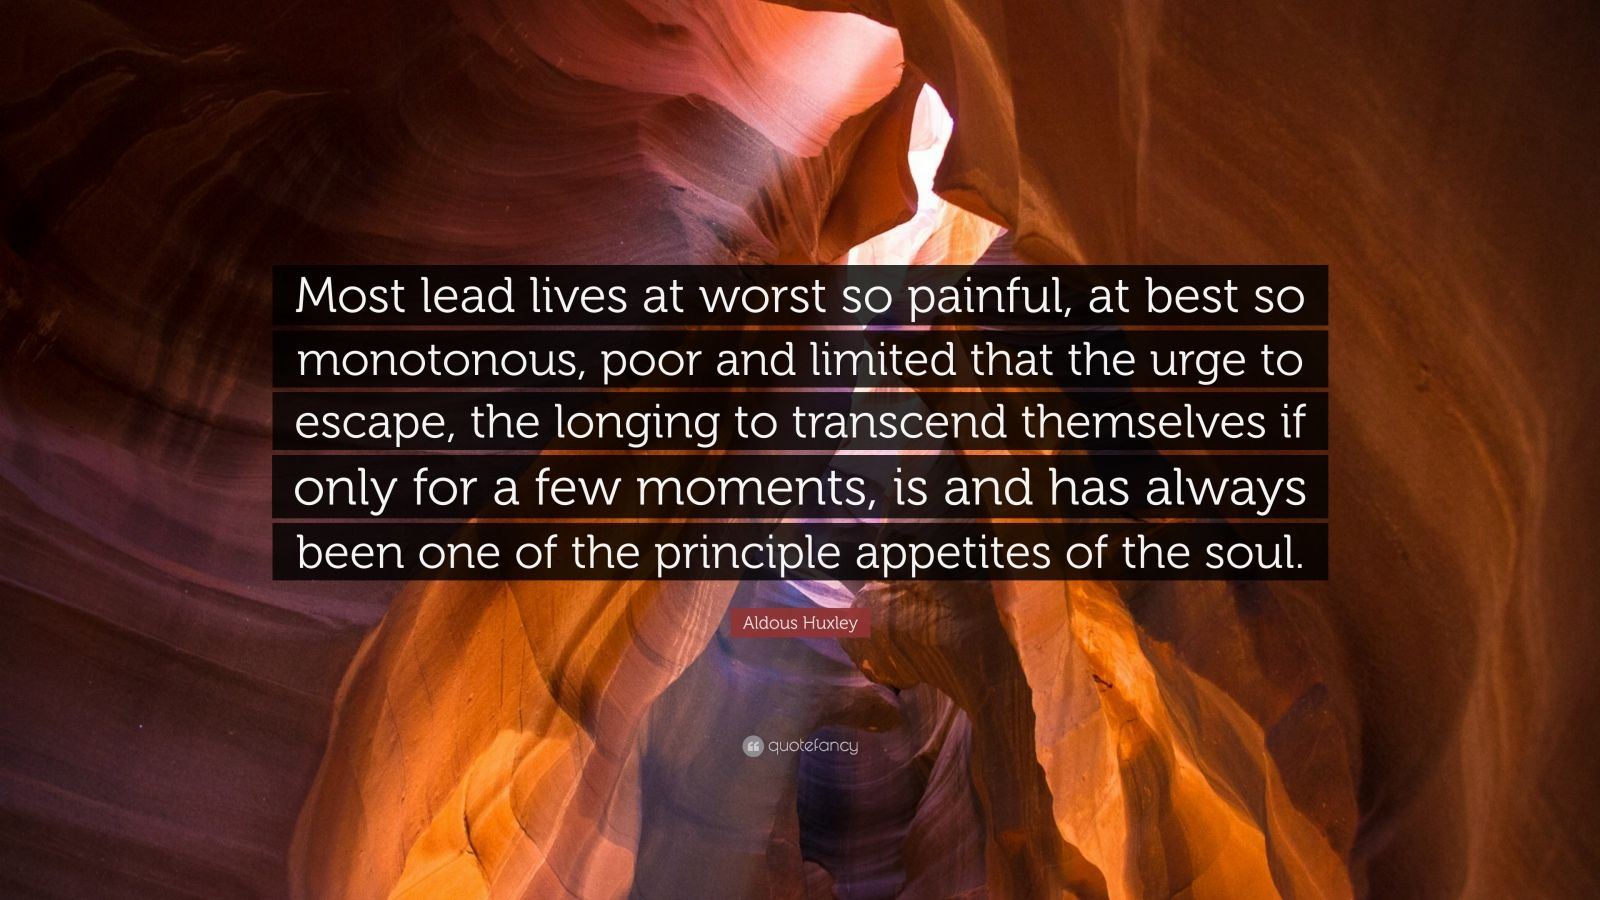 "Aldous Huxley Quote: ""Most lead lives at worst so painful, at best so monotonous, poor and limited that the urge to escape, the longing to transcend themselves if only for a few moments, is and has always been one of the principle appetites of the soul."""